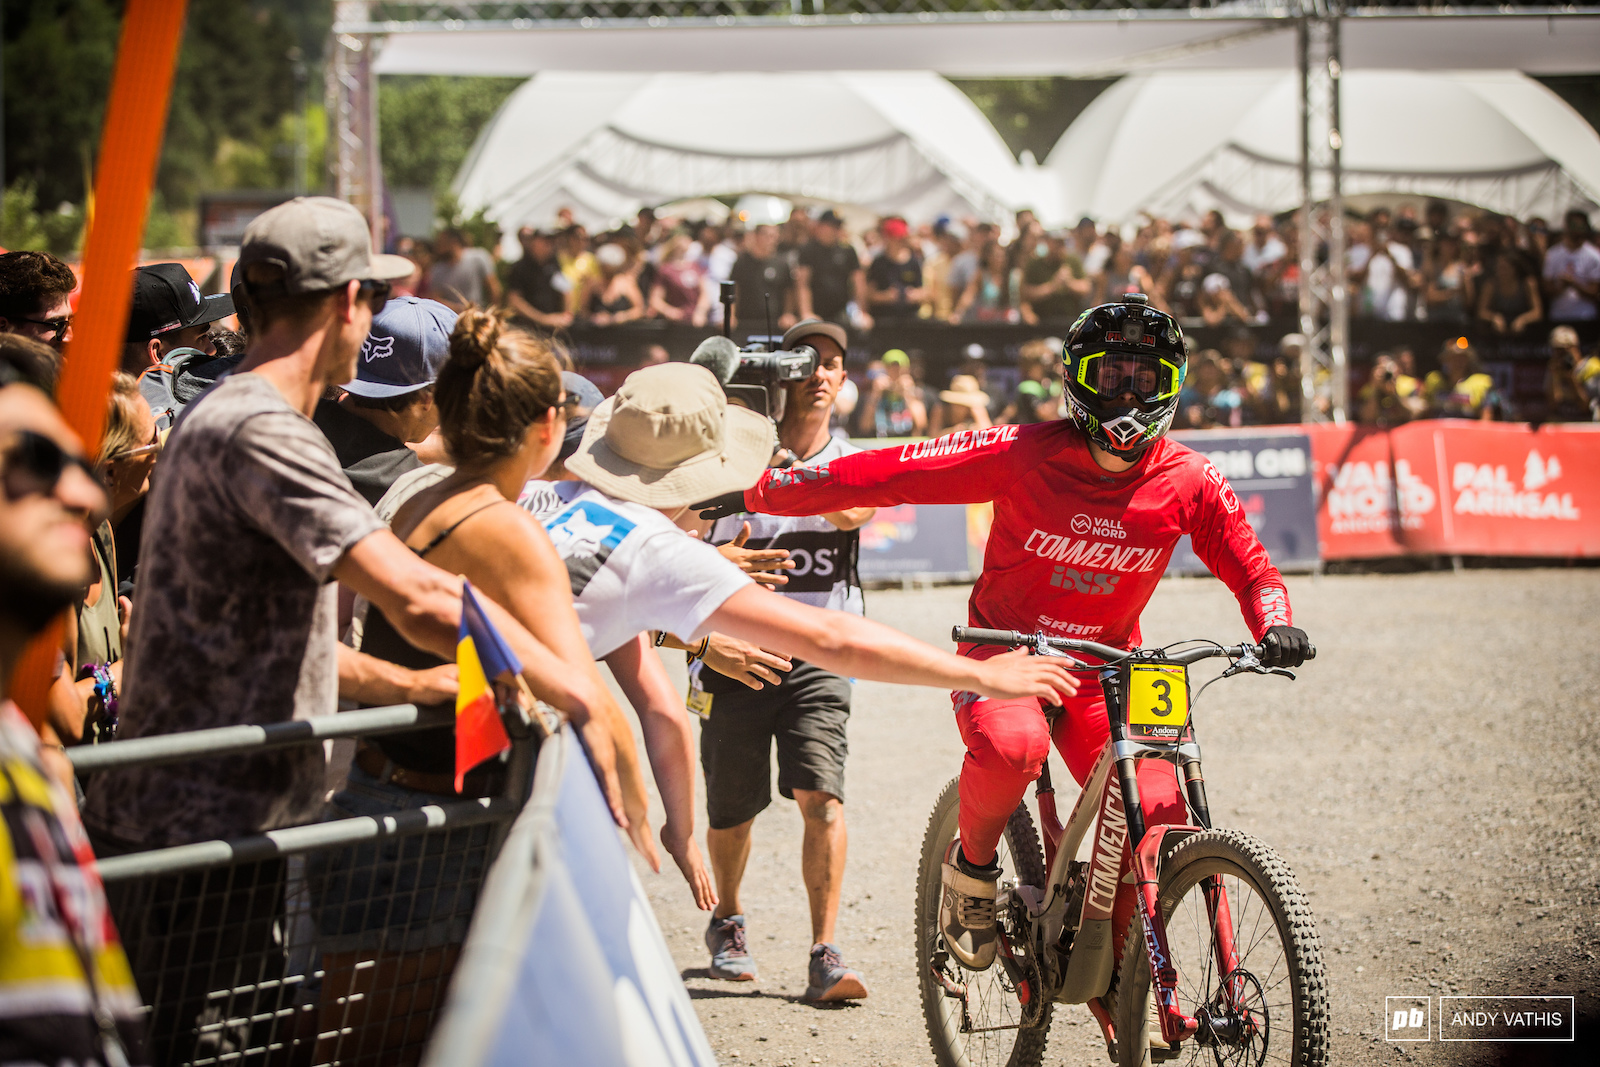 Amaury is loved by all here in Commencal country.